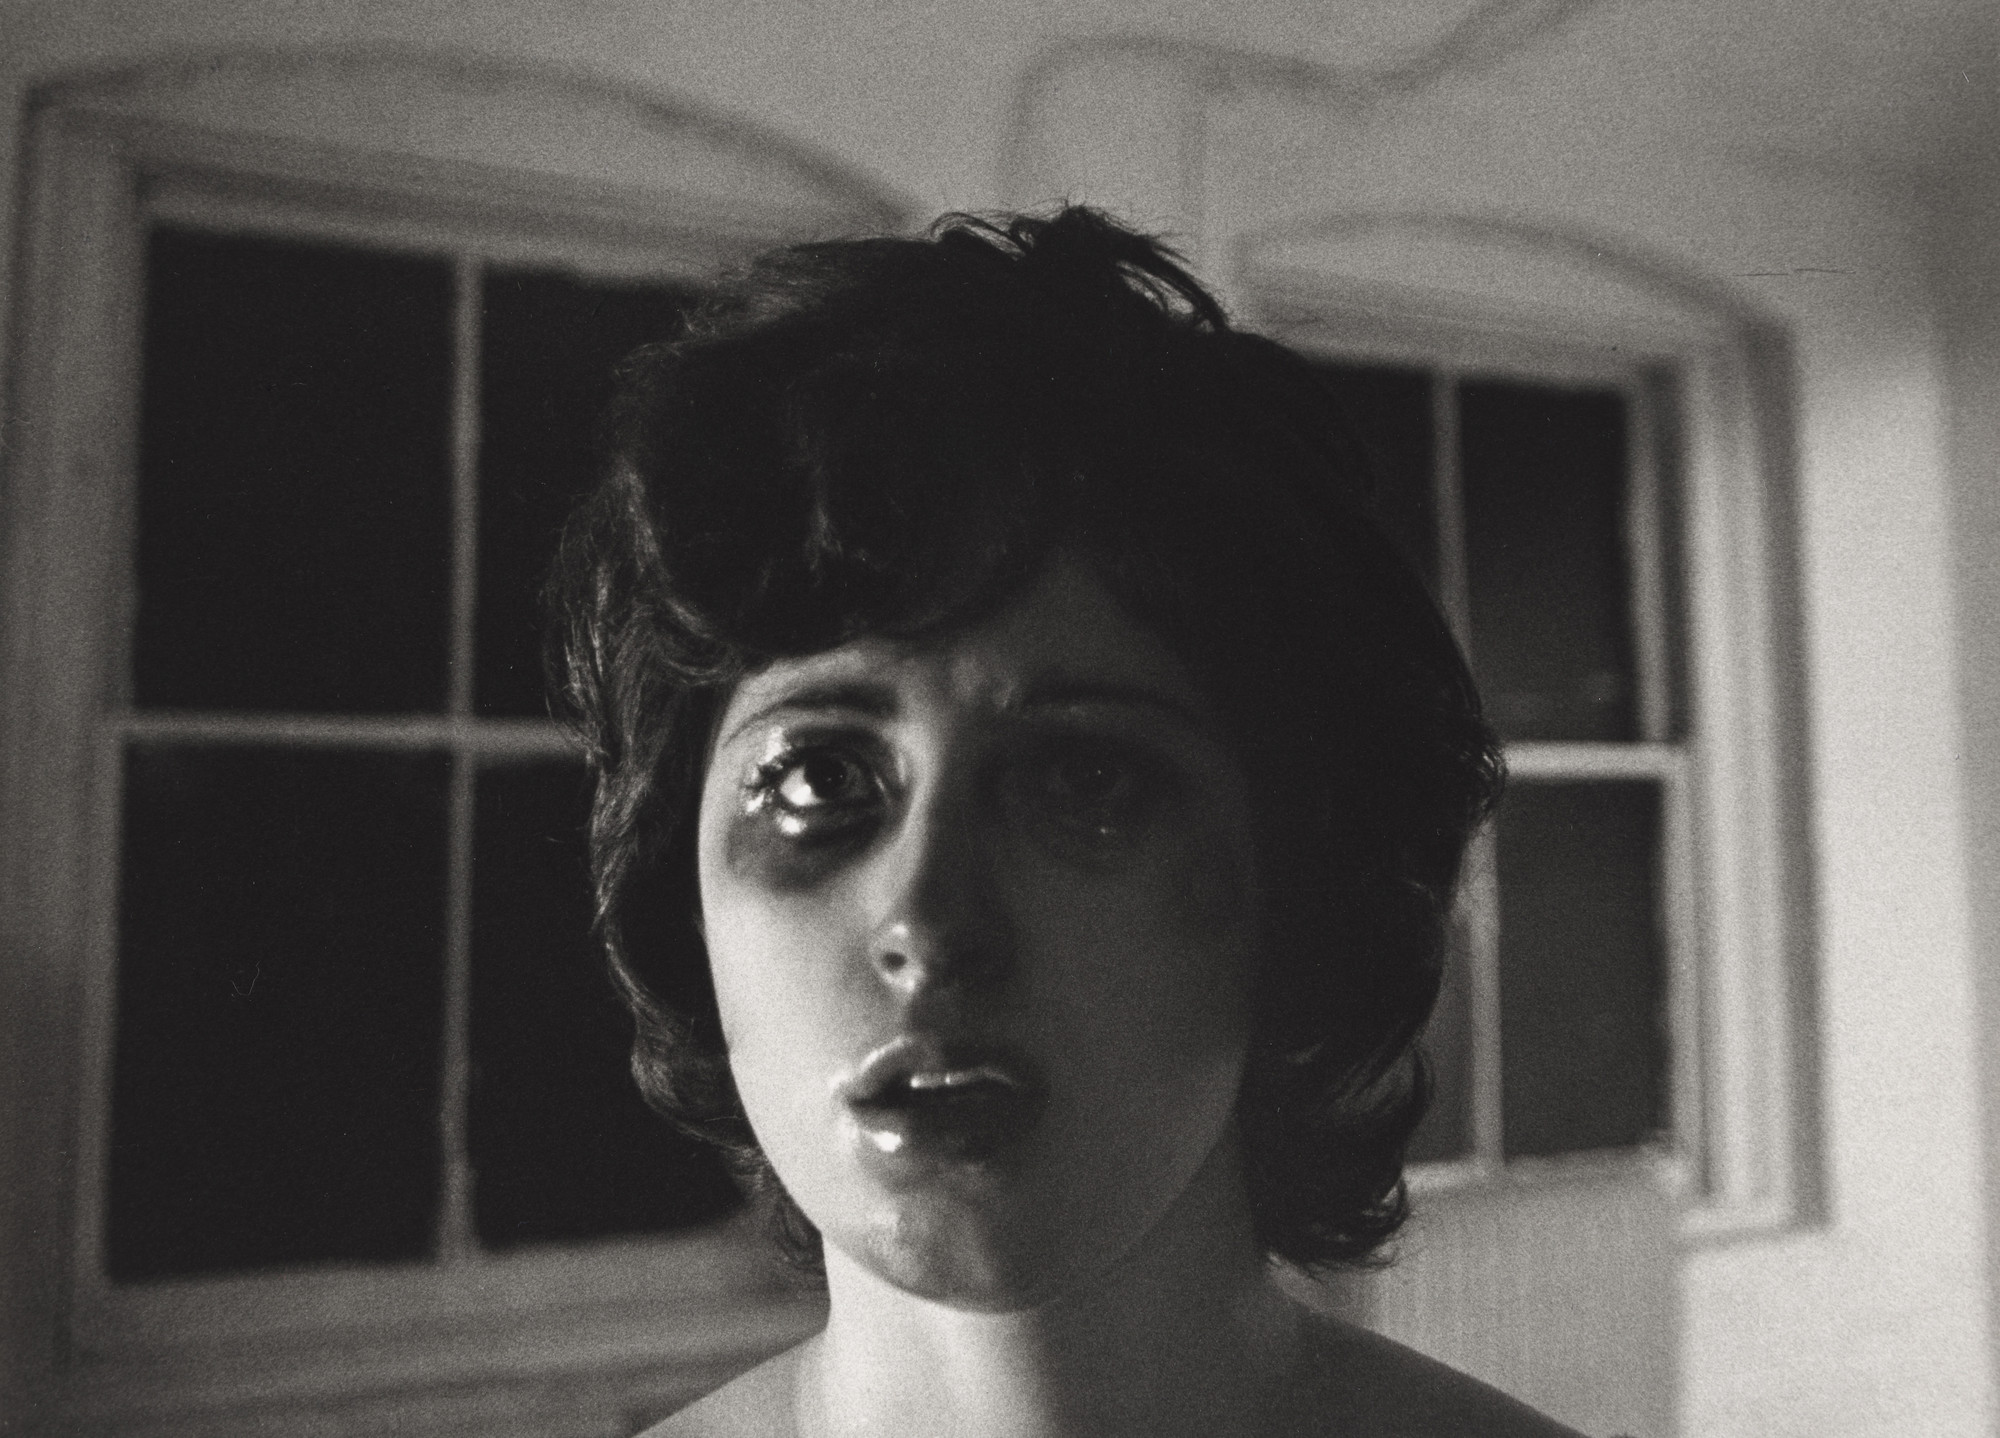 Cindy Sherman. Untitled Film Still #30. 1979